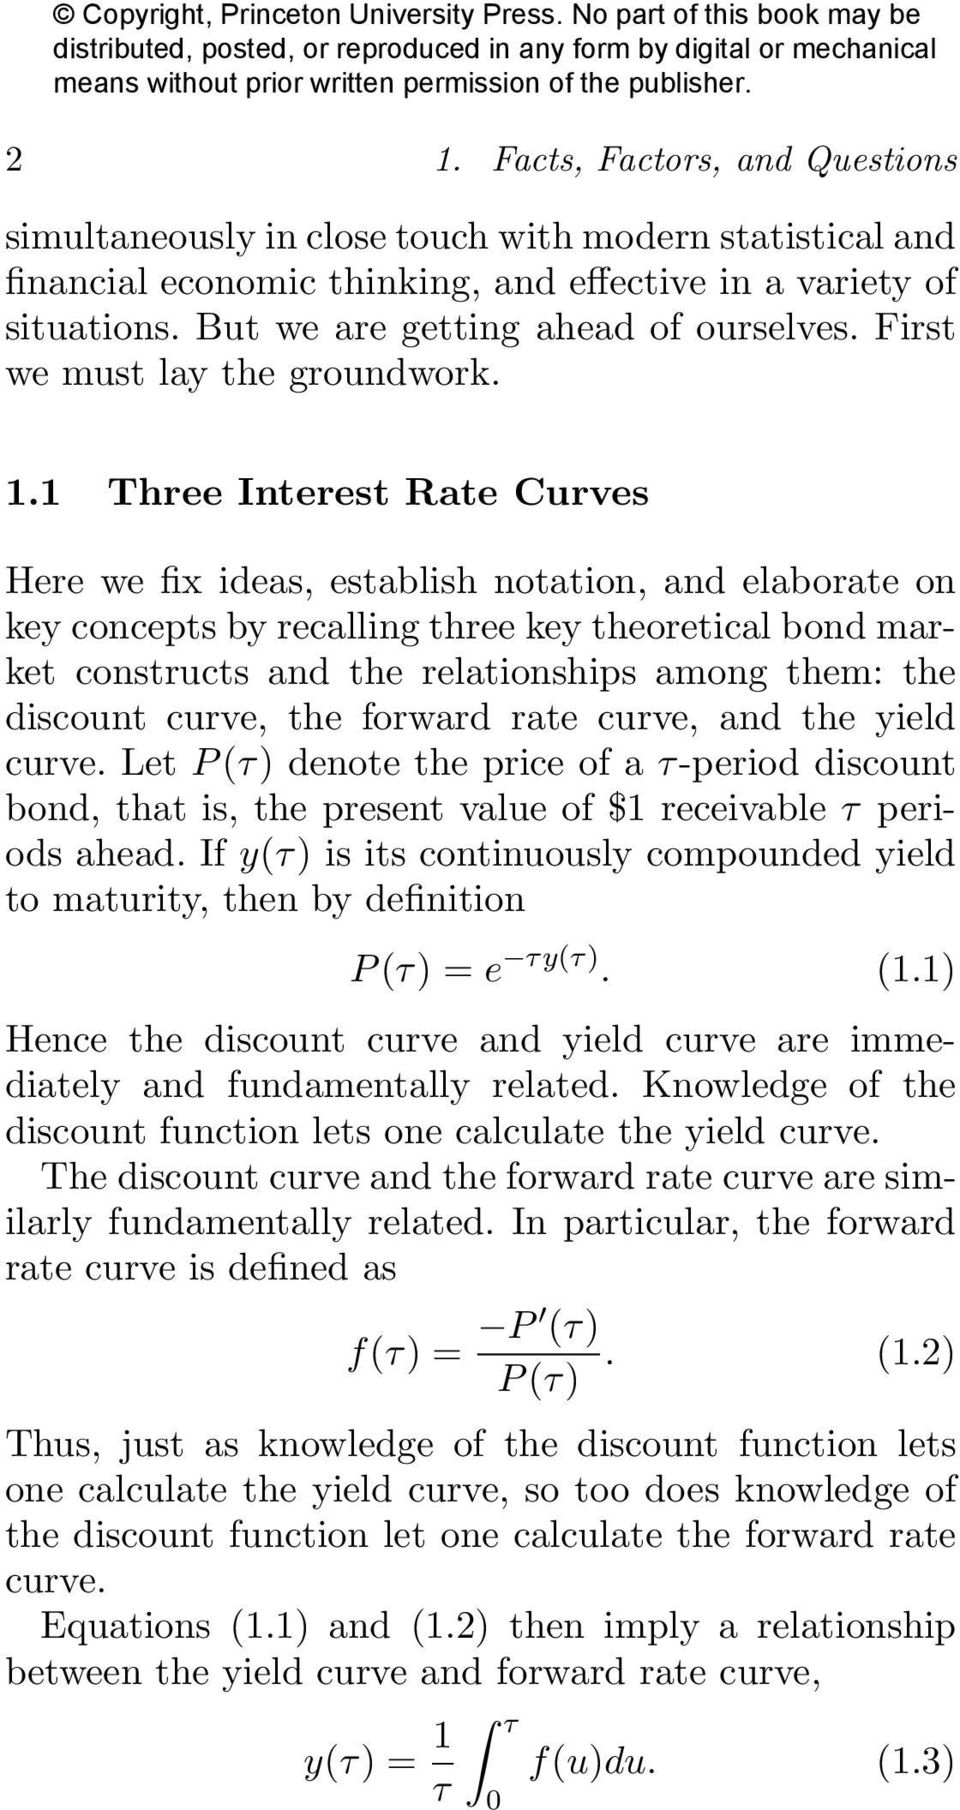 1 Three Interest Rate Curves Here we fix ideas, establish notation, and elaborate on key concepts by recalling three key theoretical bond market constructs and the relationships among them: the